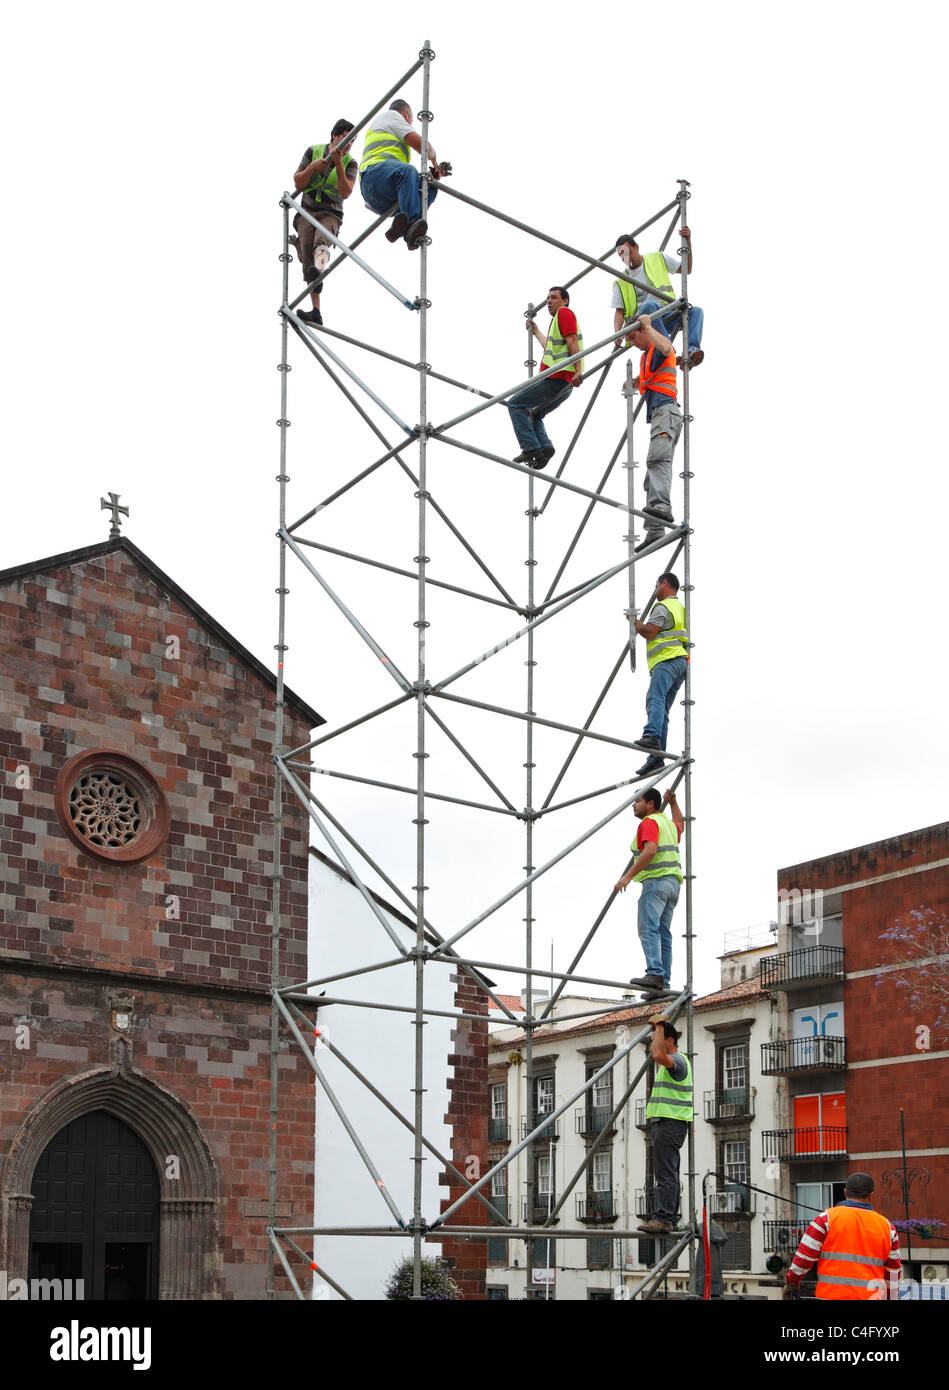 Team of men erecting scaffolding. - Stock Image